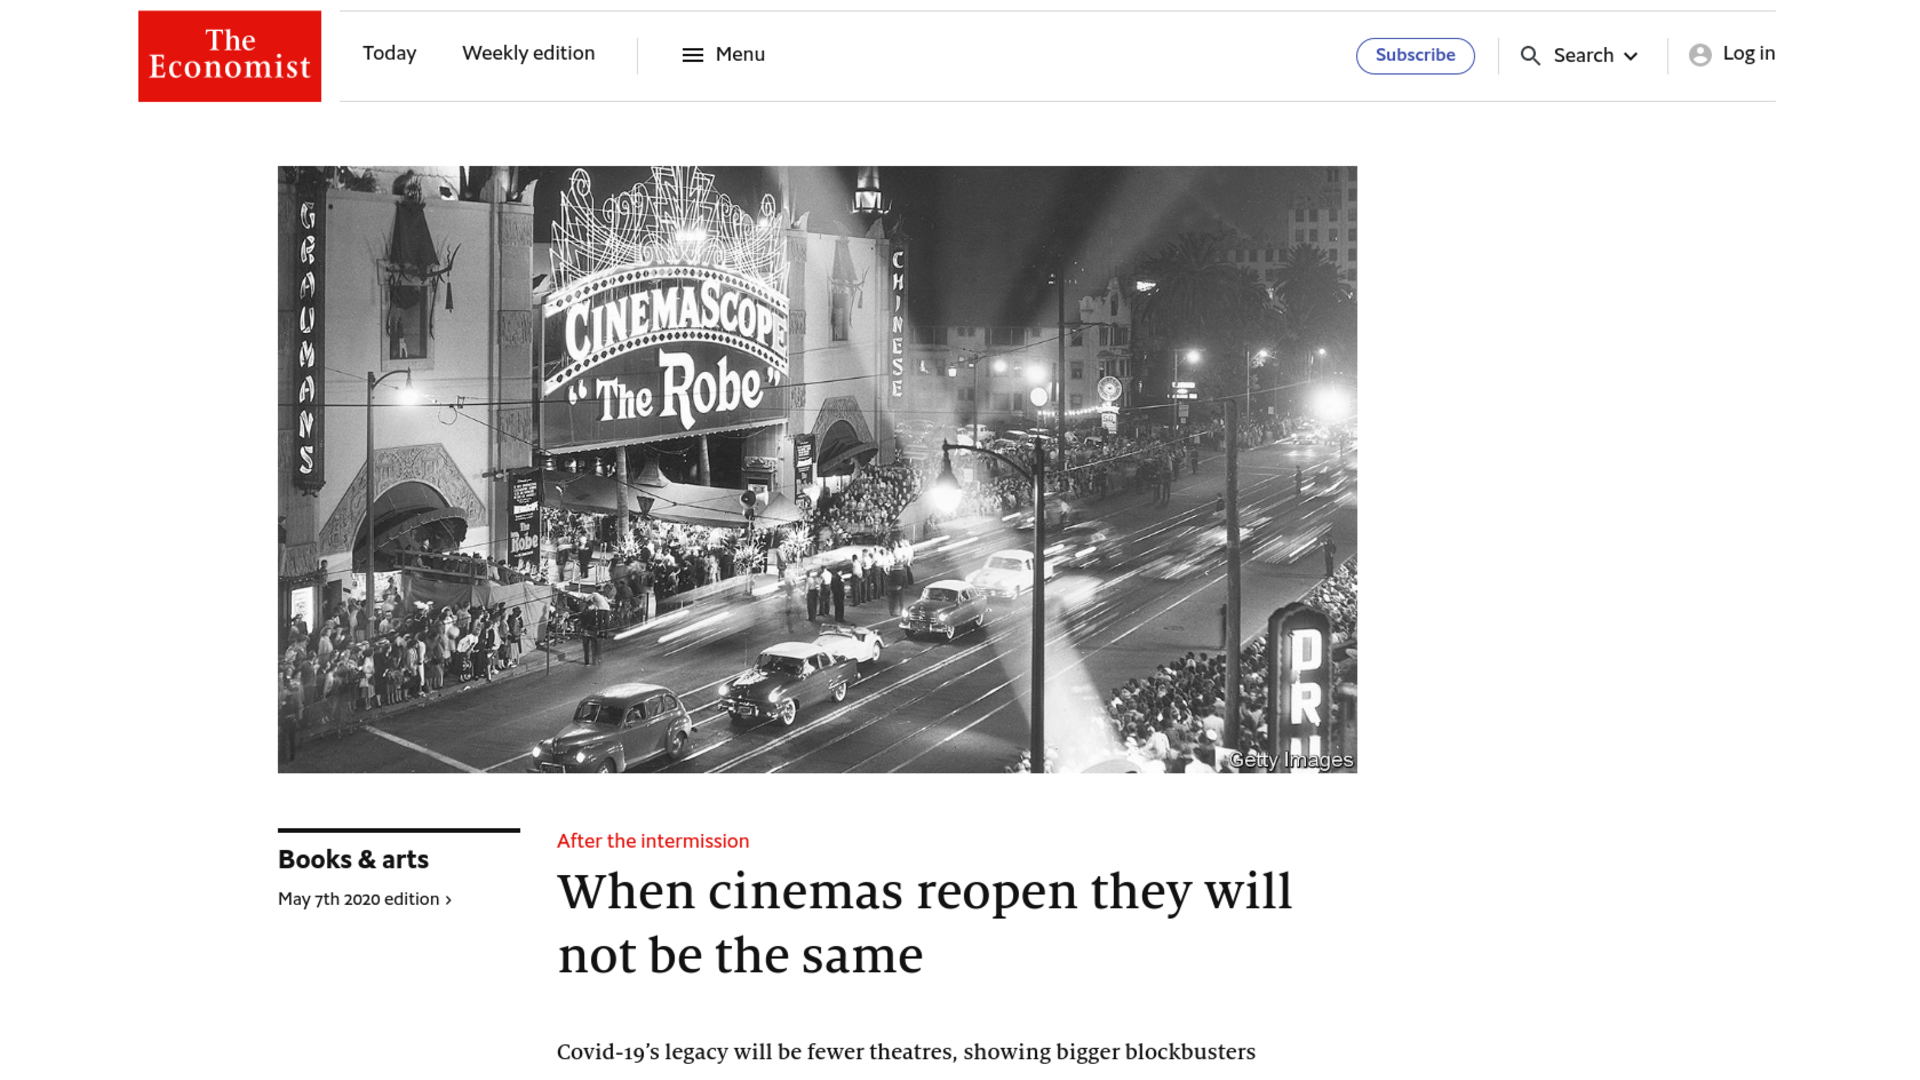 Fairness Rocks News When cinemas reopen they will not be the same